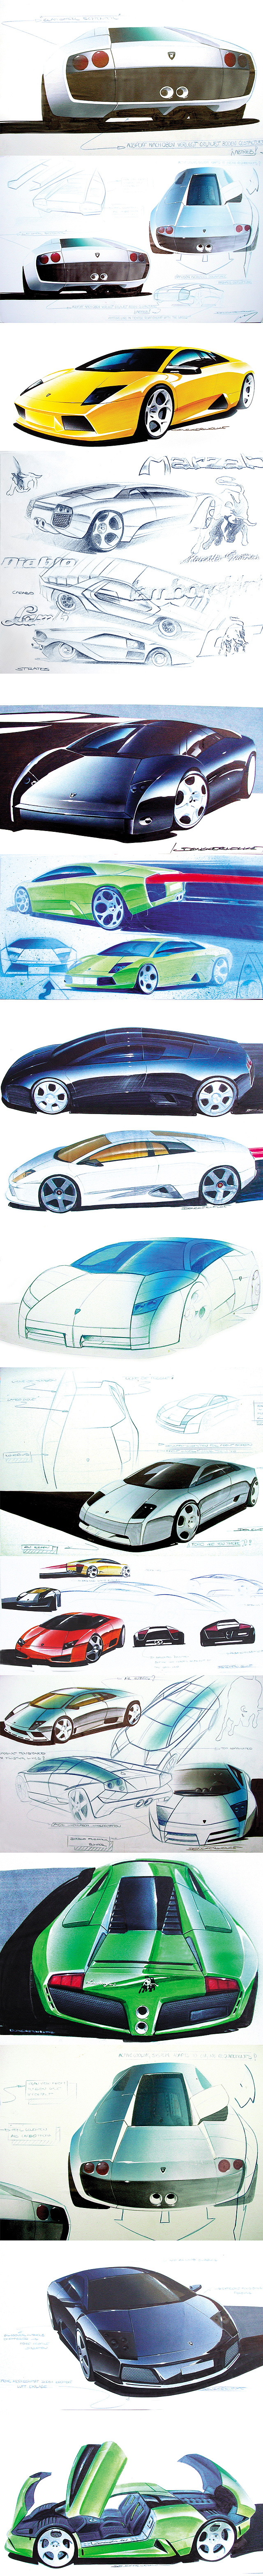 lamborghini-sketches